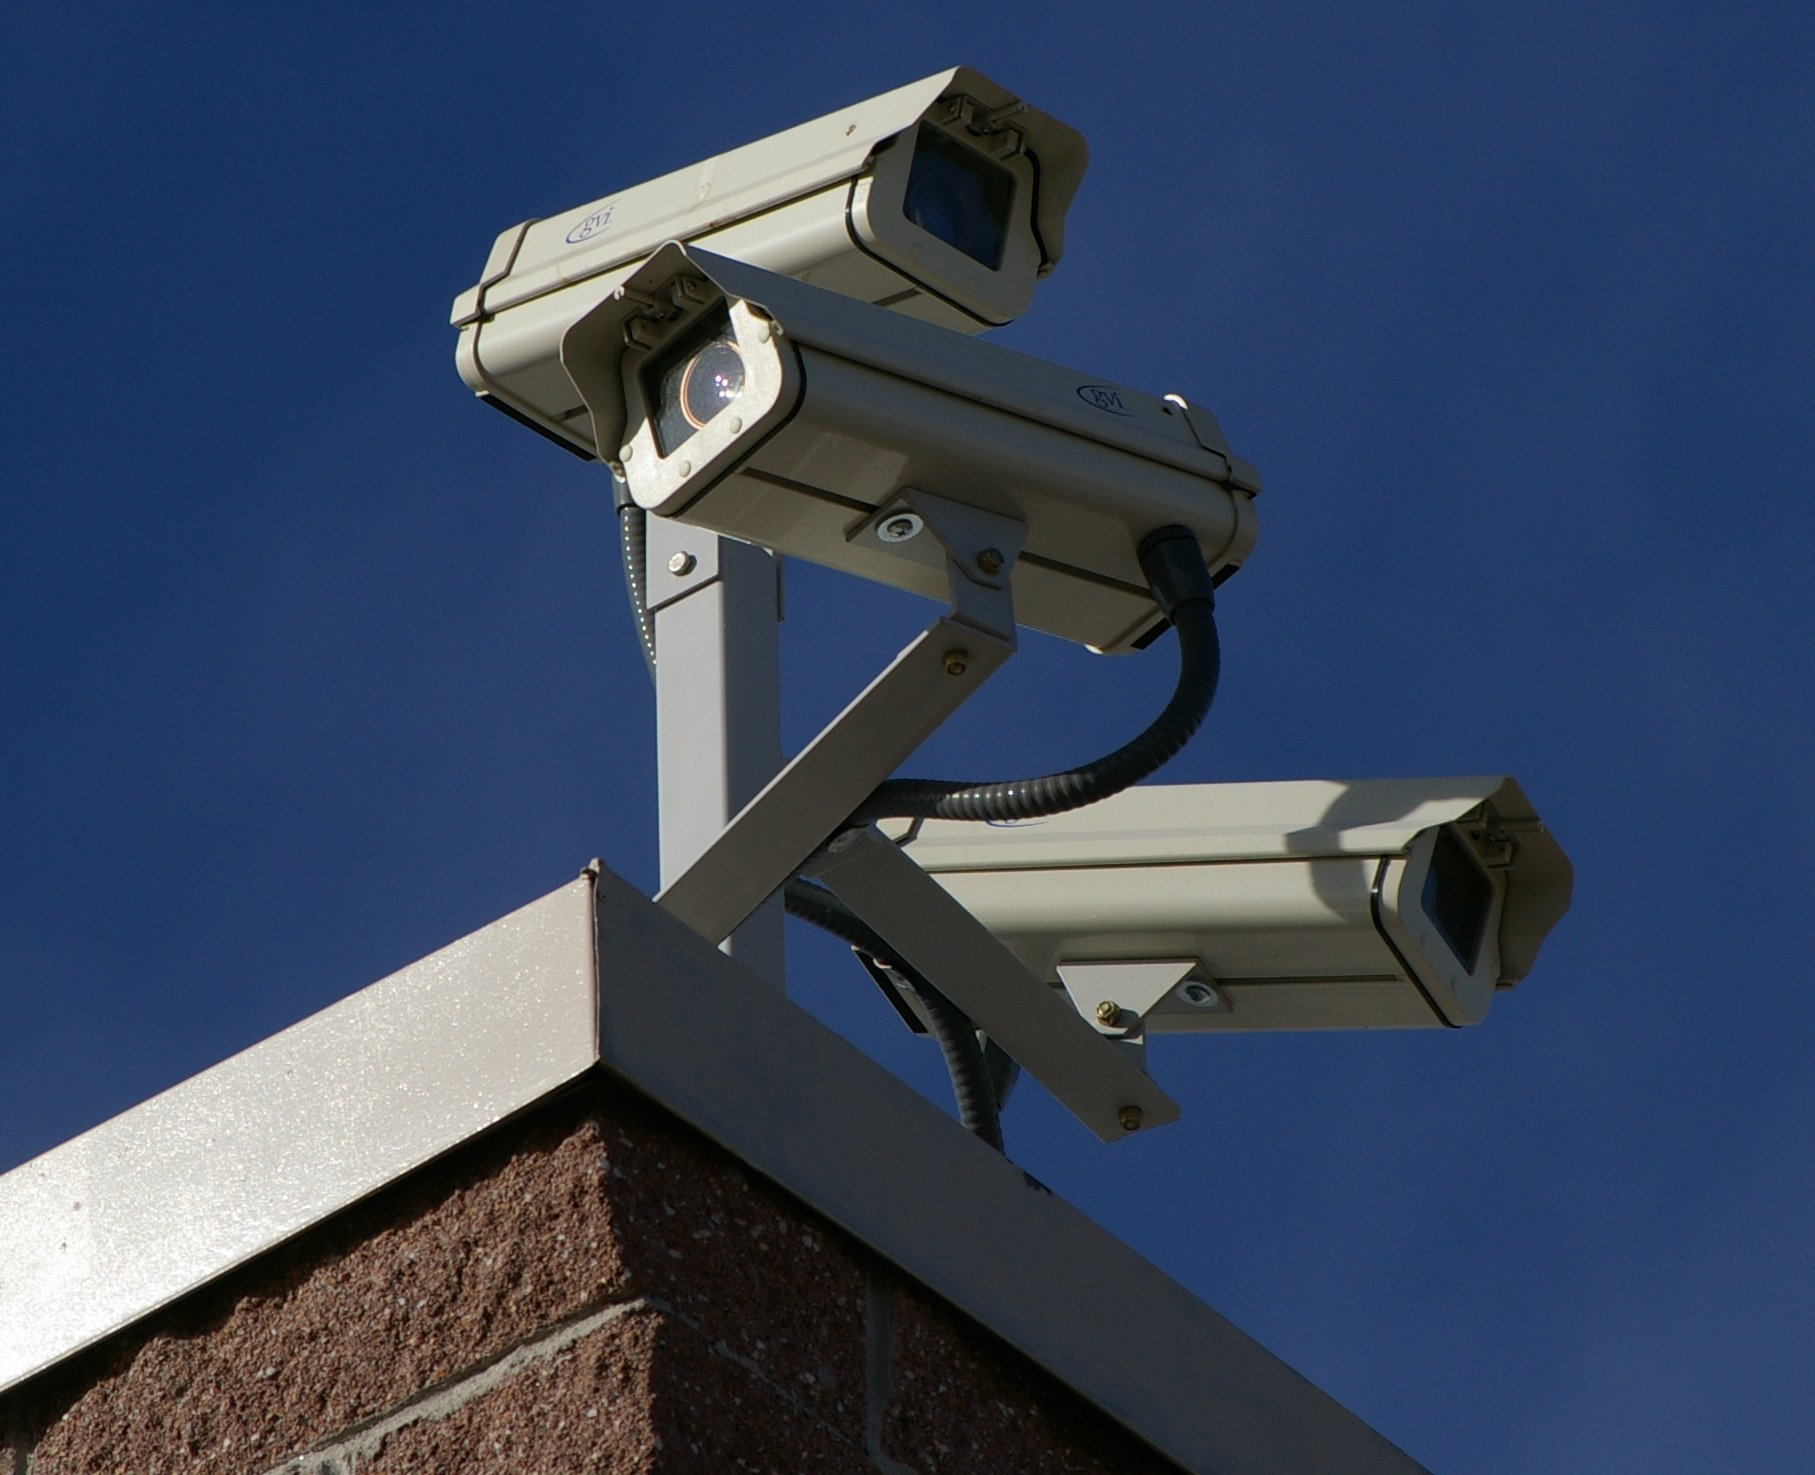 A proliferation of surveillance cameras has not always led to a reduction in crime.